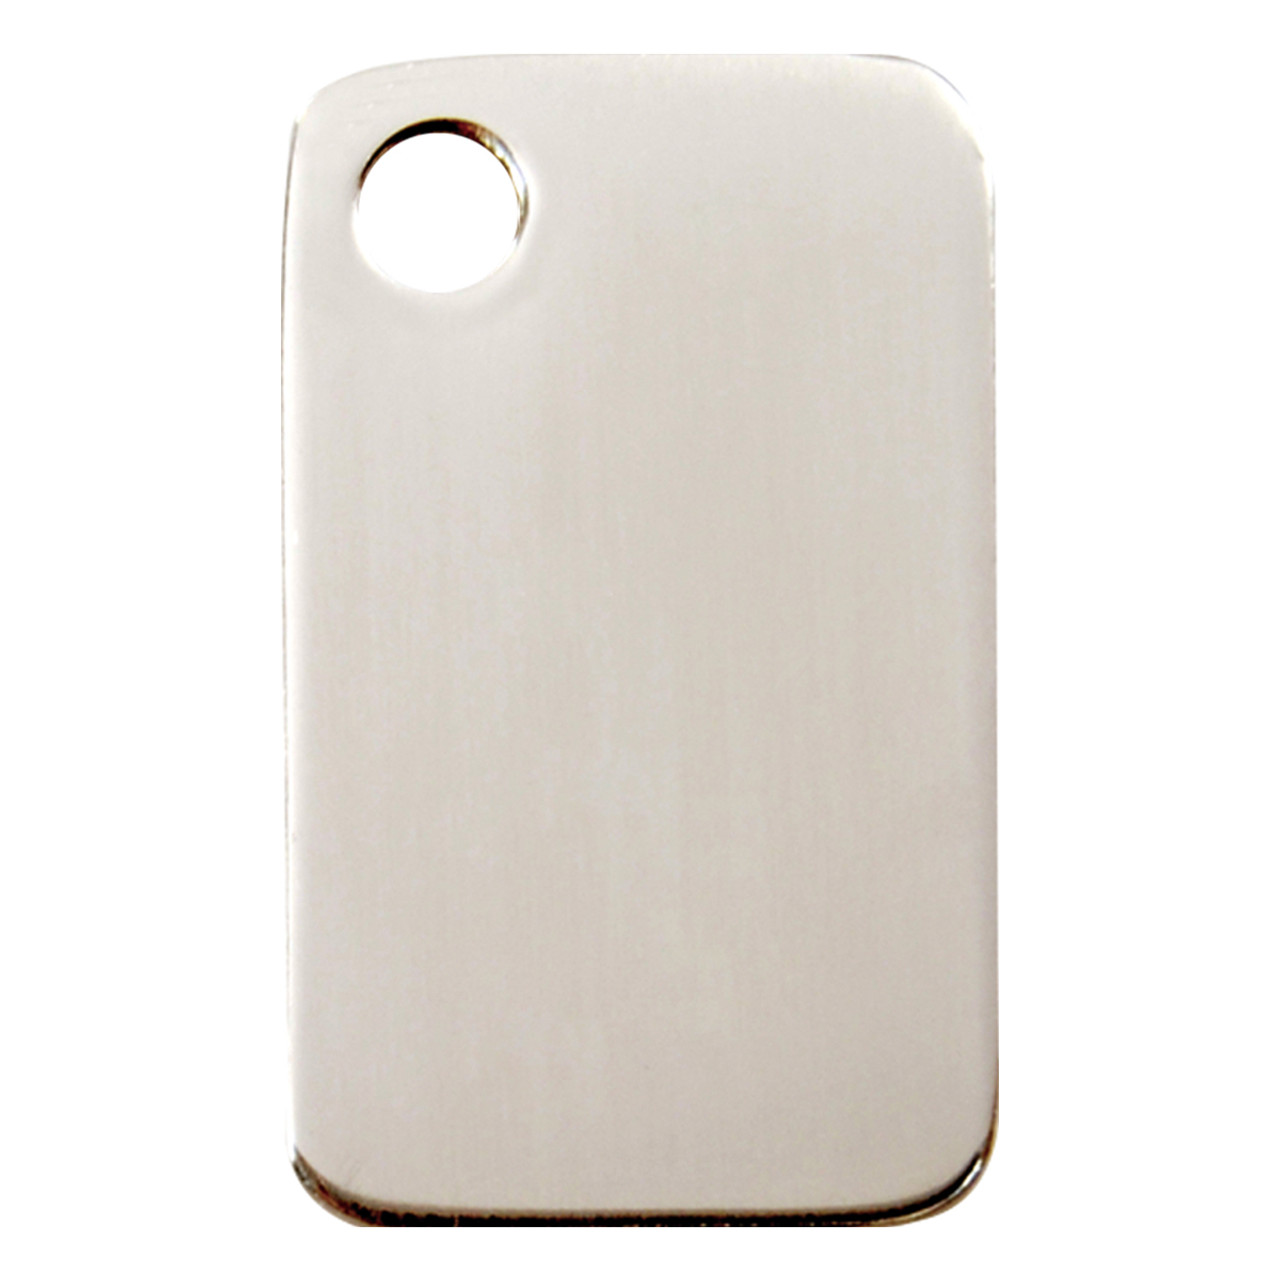 Flat Stainless Steel I.D. Tags